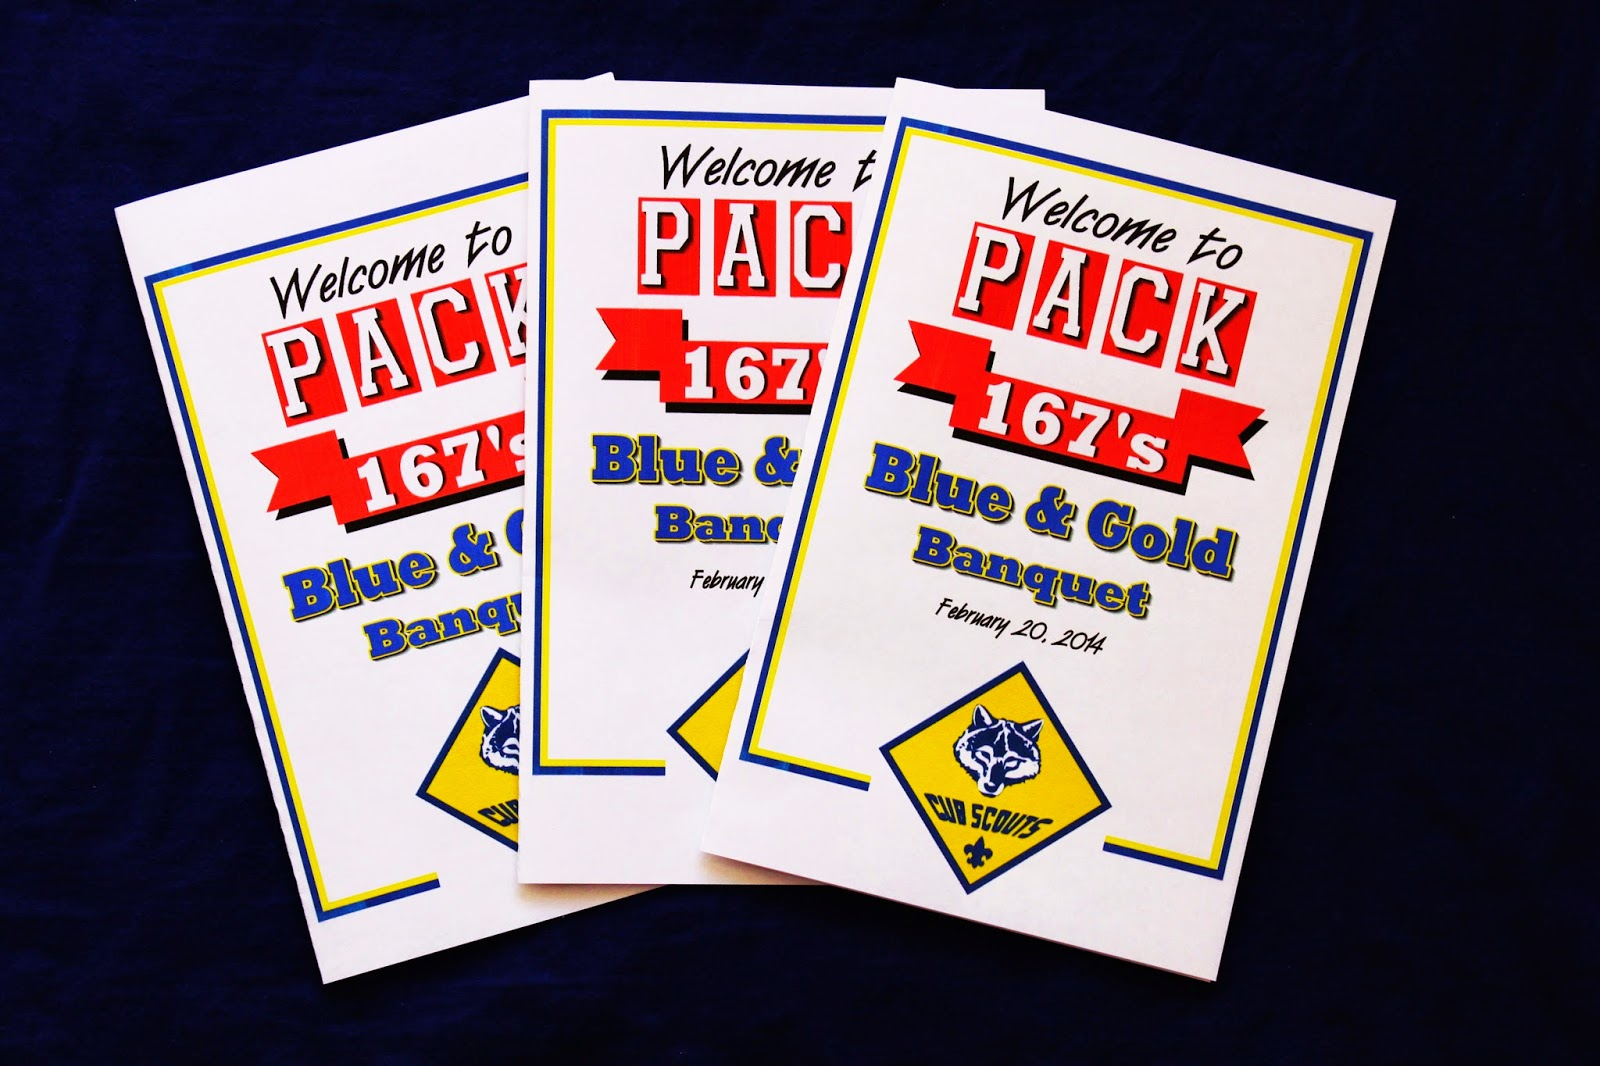 Cub scout invitation template car interior design for Cub scout blue and gold program template